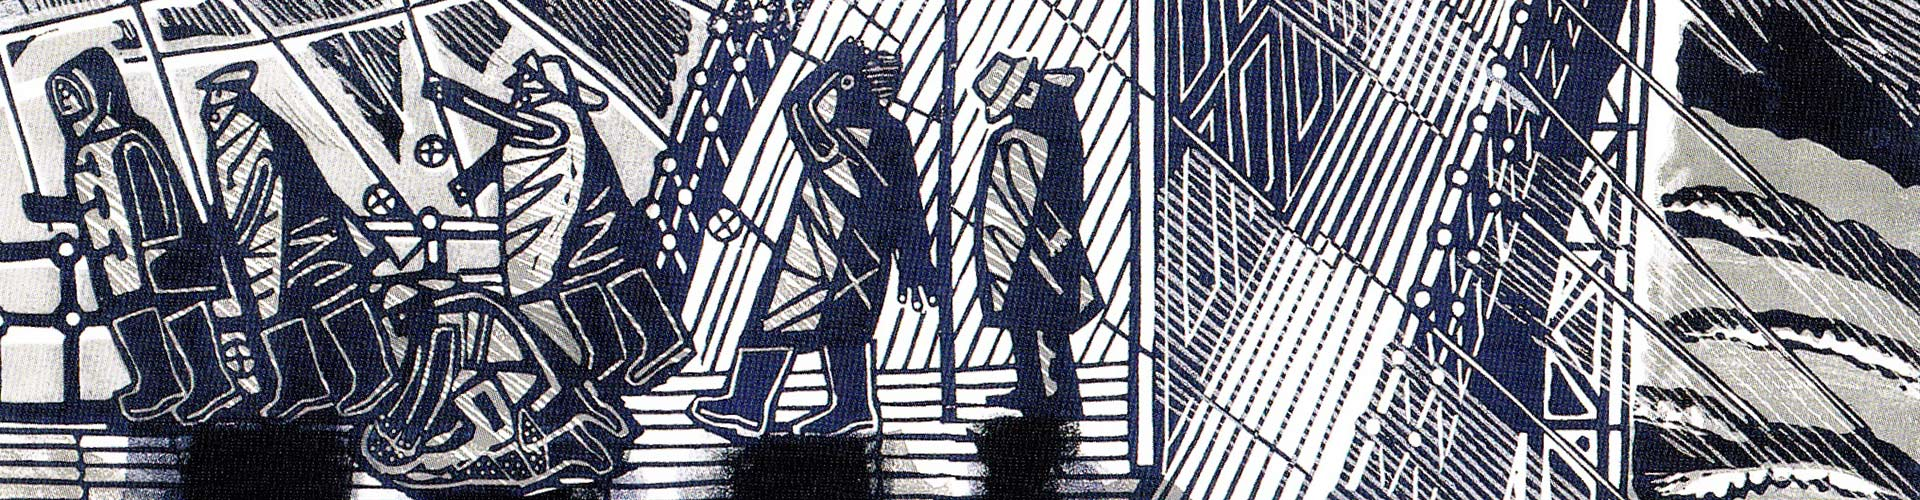 Orwell press trade supplier of greetings cards snowstorm at brighton linocut greeting card by edward bawden featured on desktop kristyandbryce Image collections